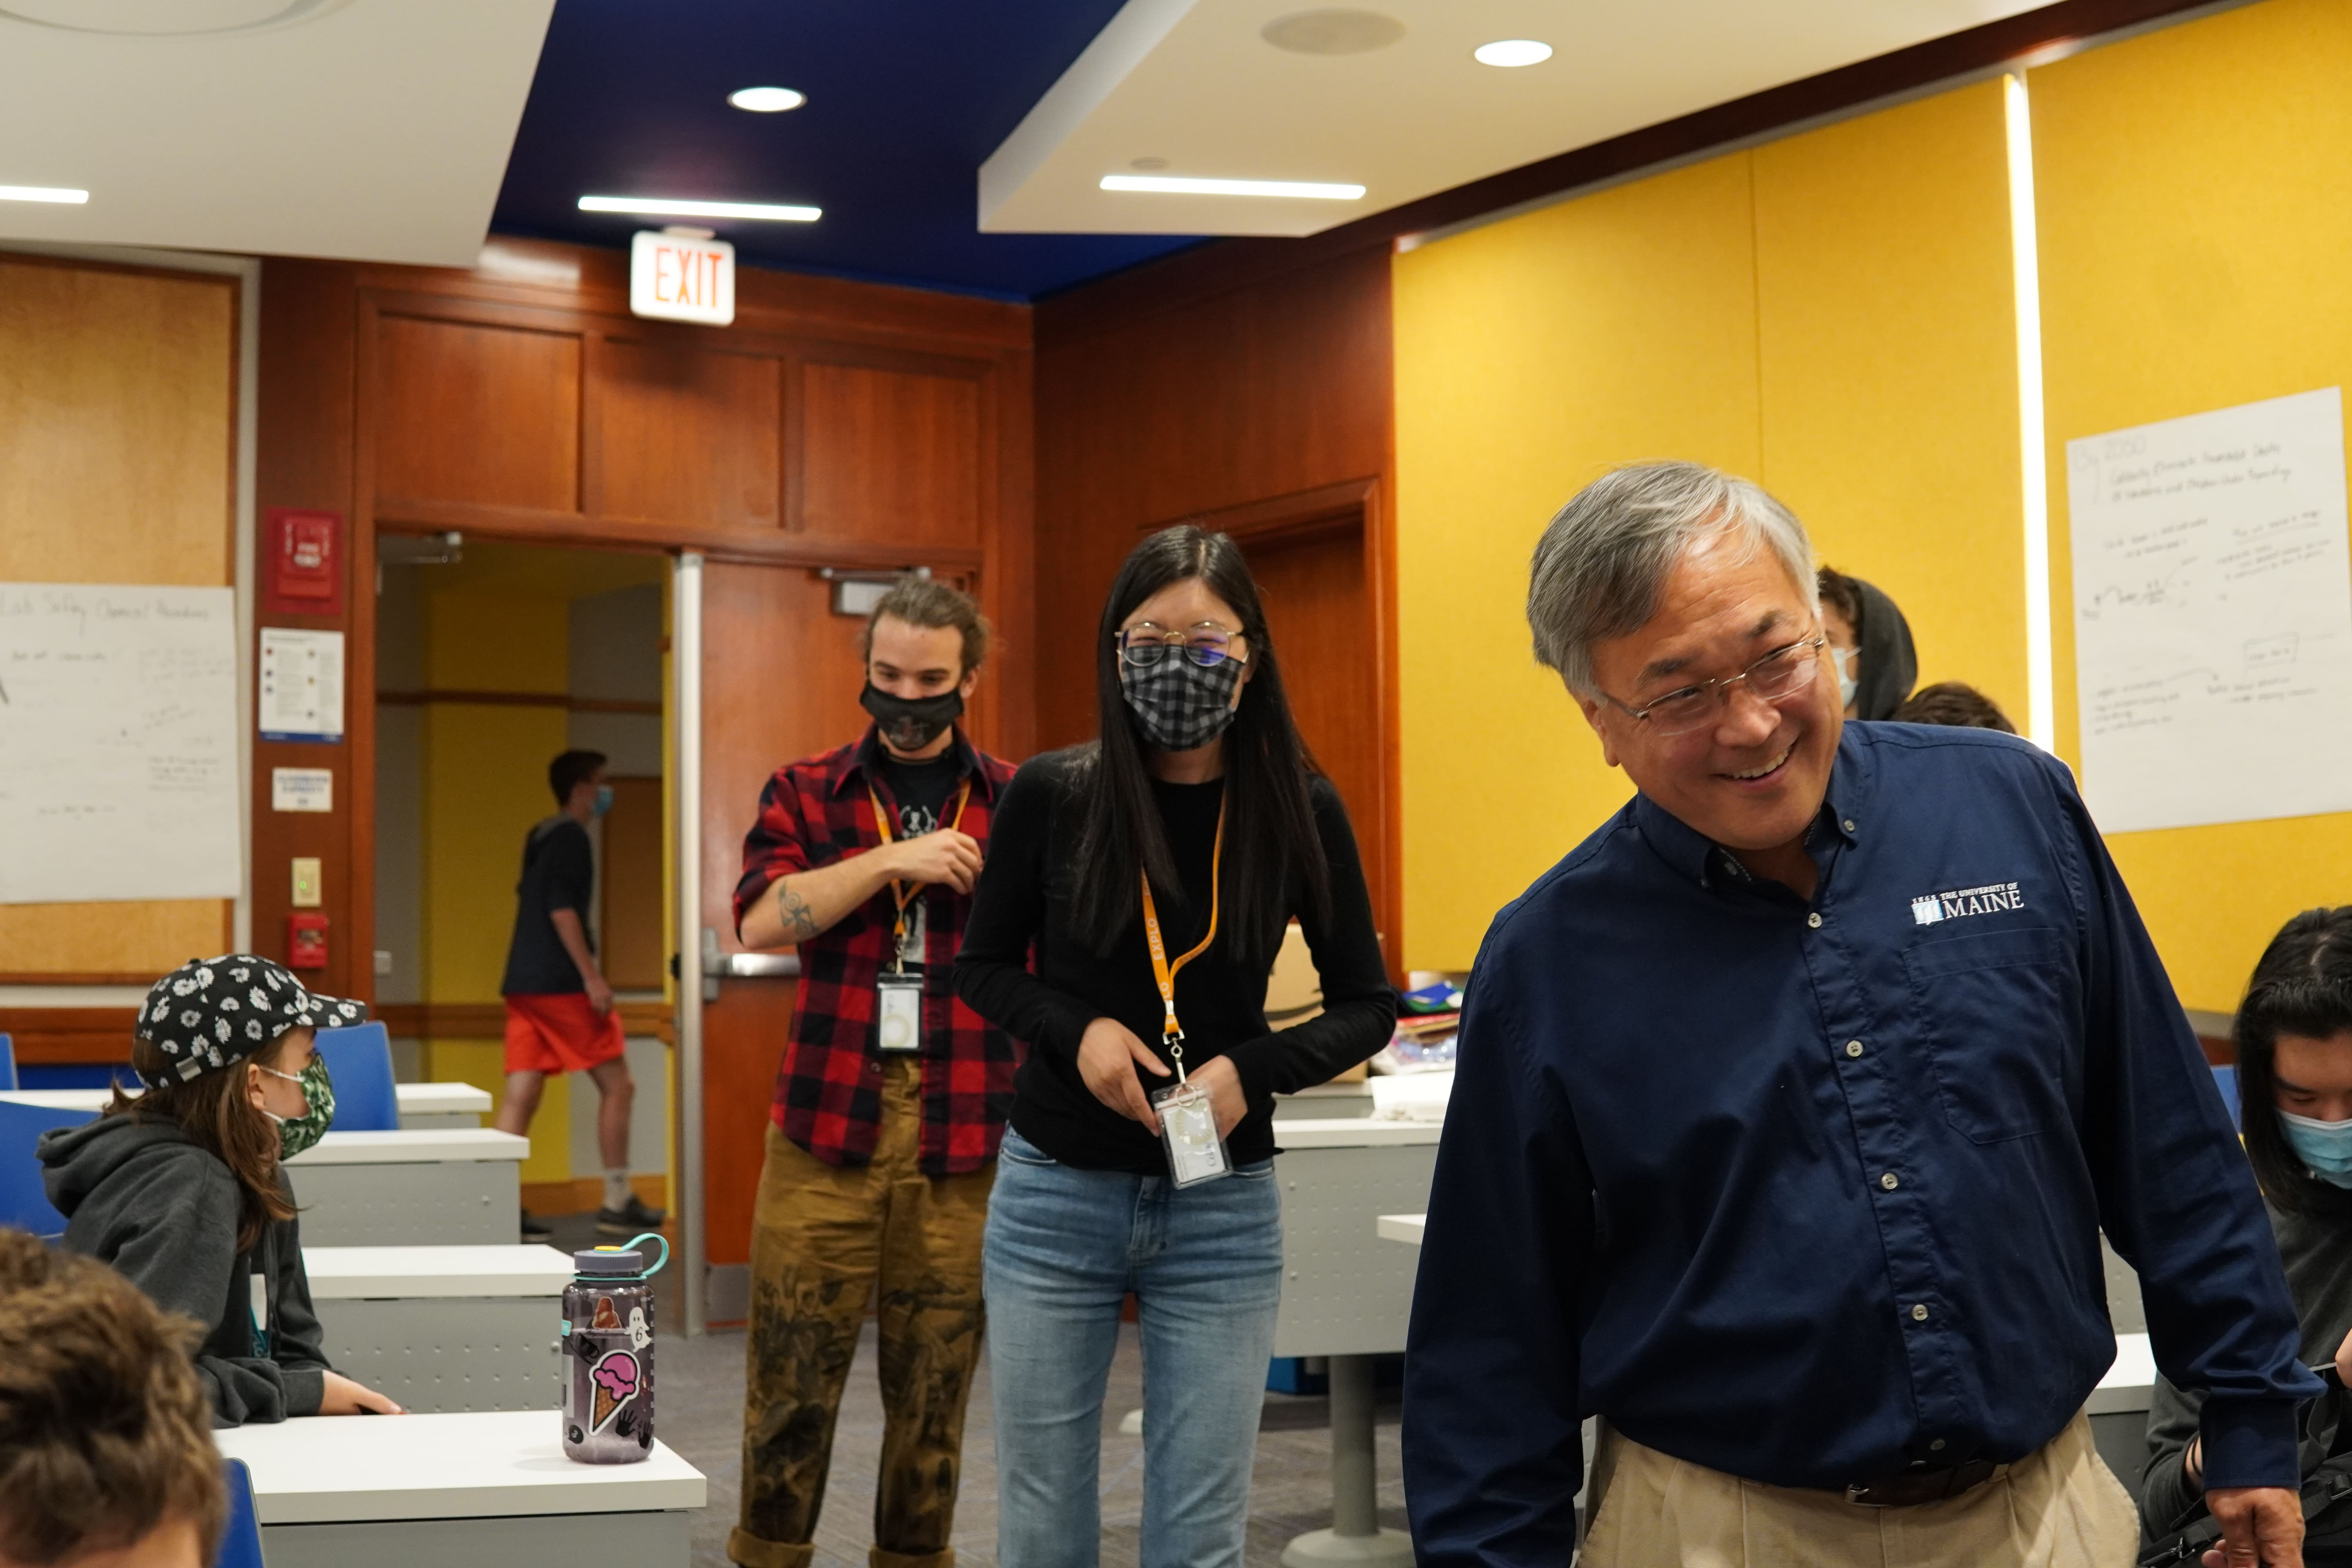 Terry Yoo, Lead Instructor Ann, and Teaching Fellow Sam all share a laugh as they descend the path into the lecture hall.